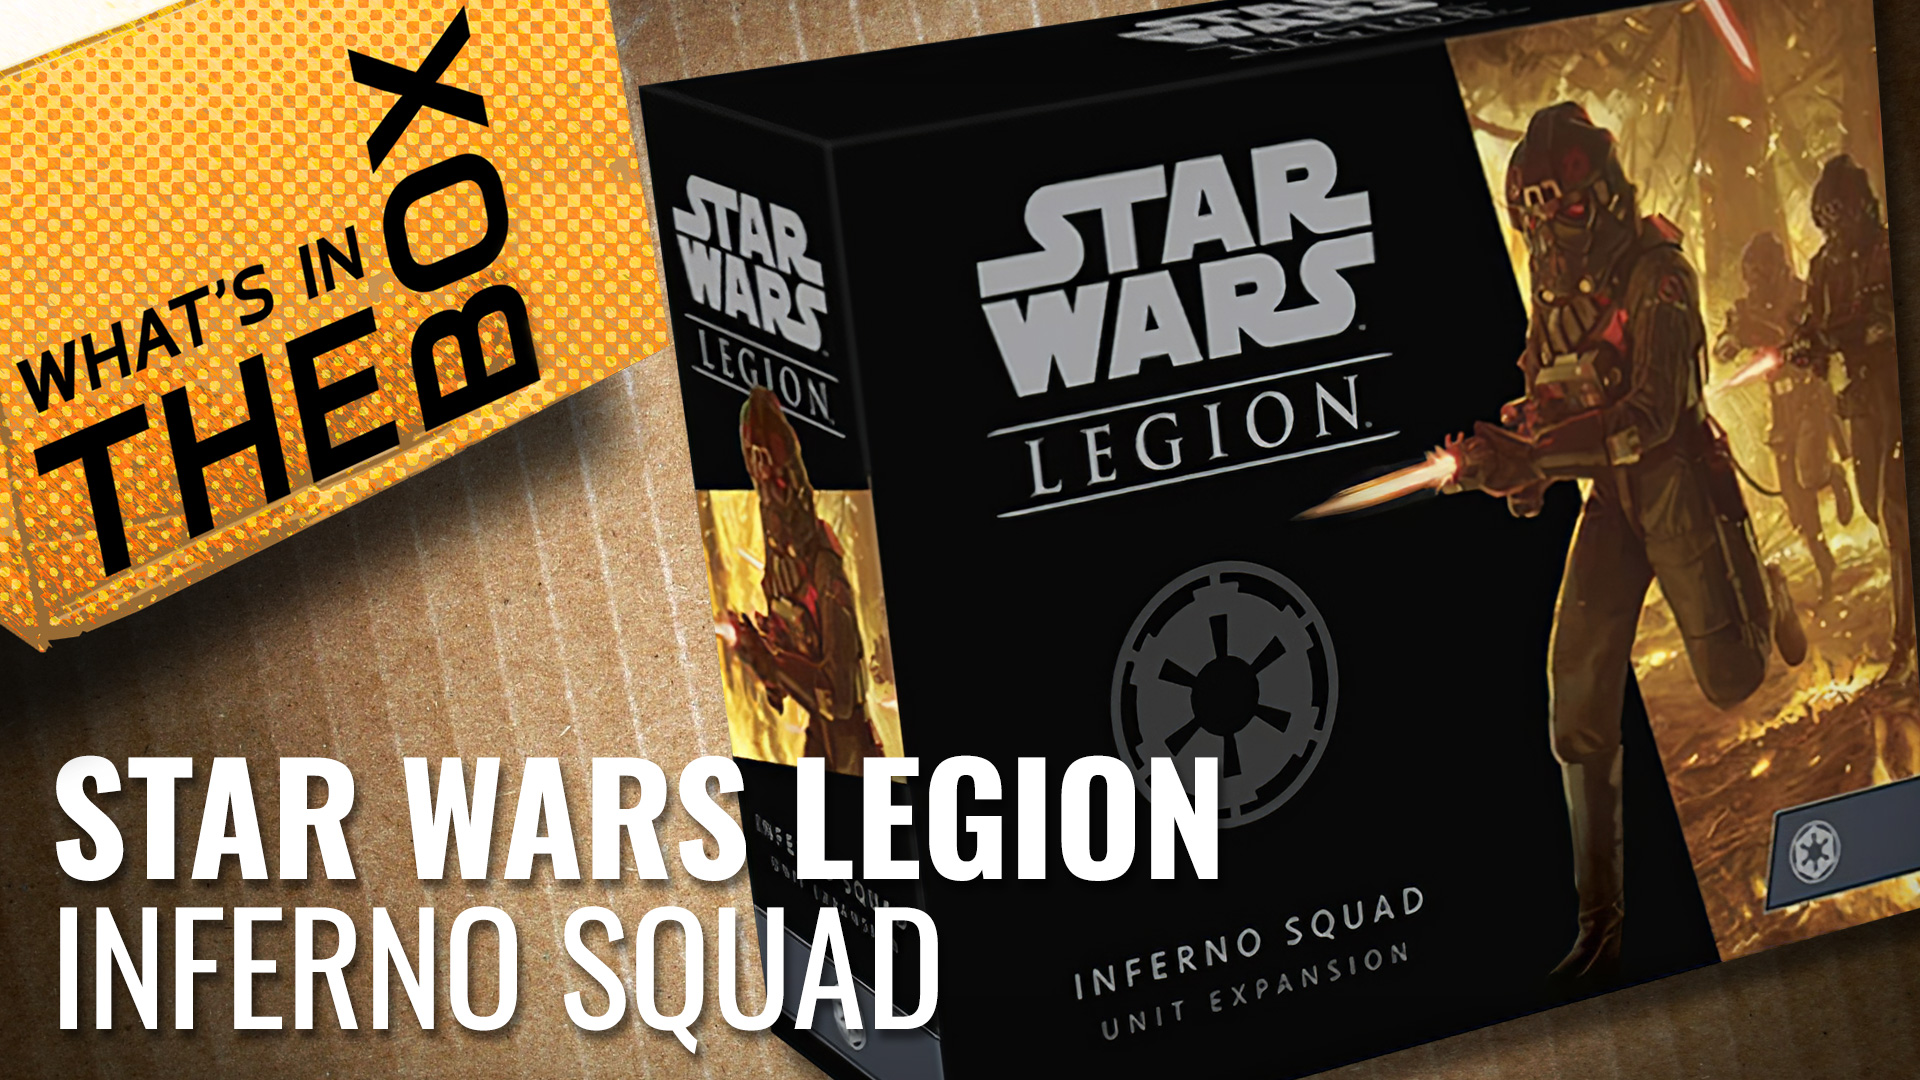 Unboxing---Star-Wars-Legion-Inferno-Squad-coverimage